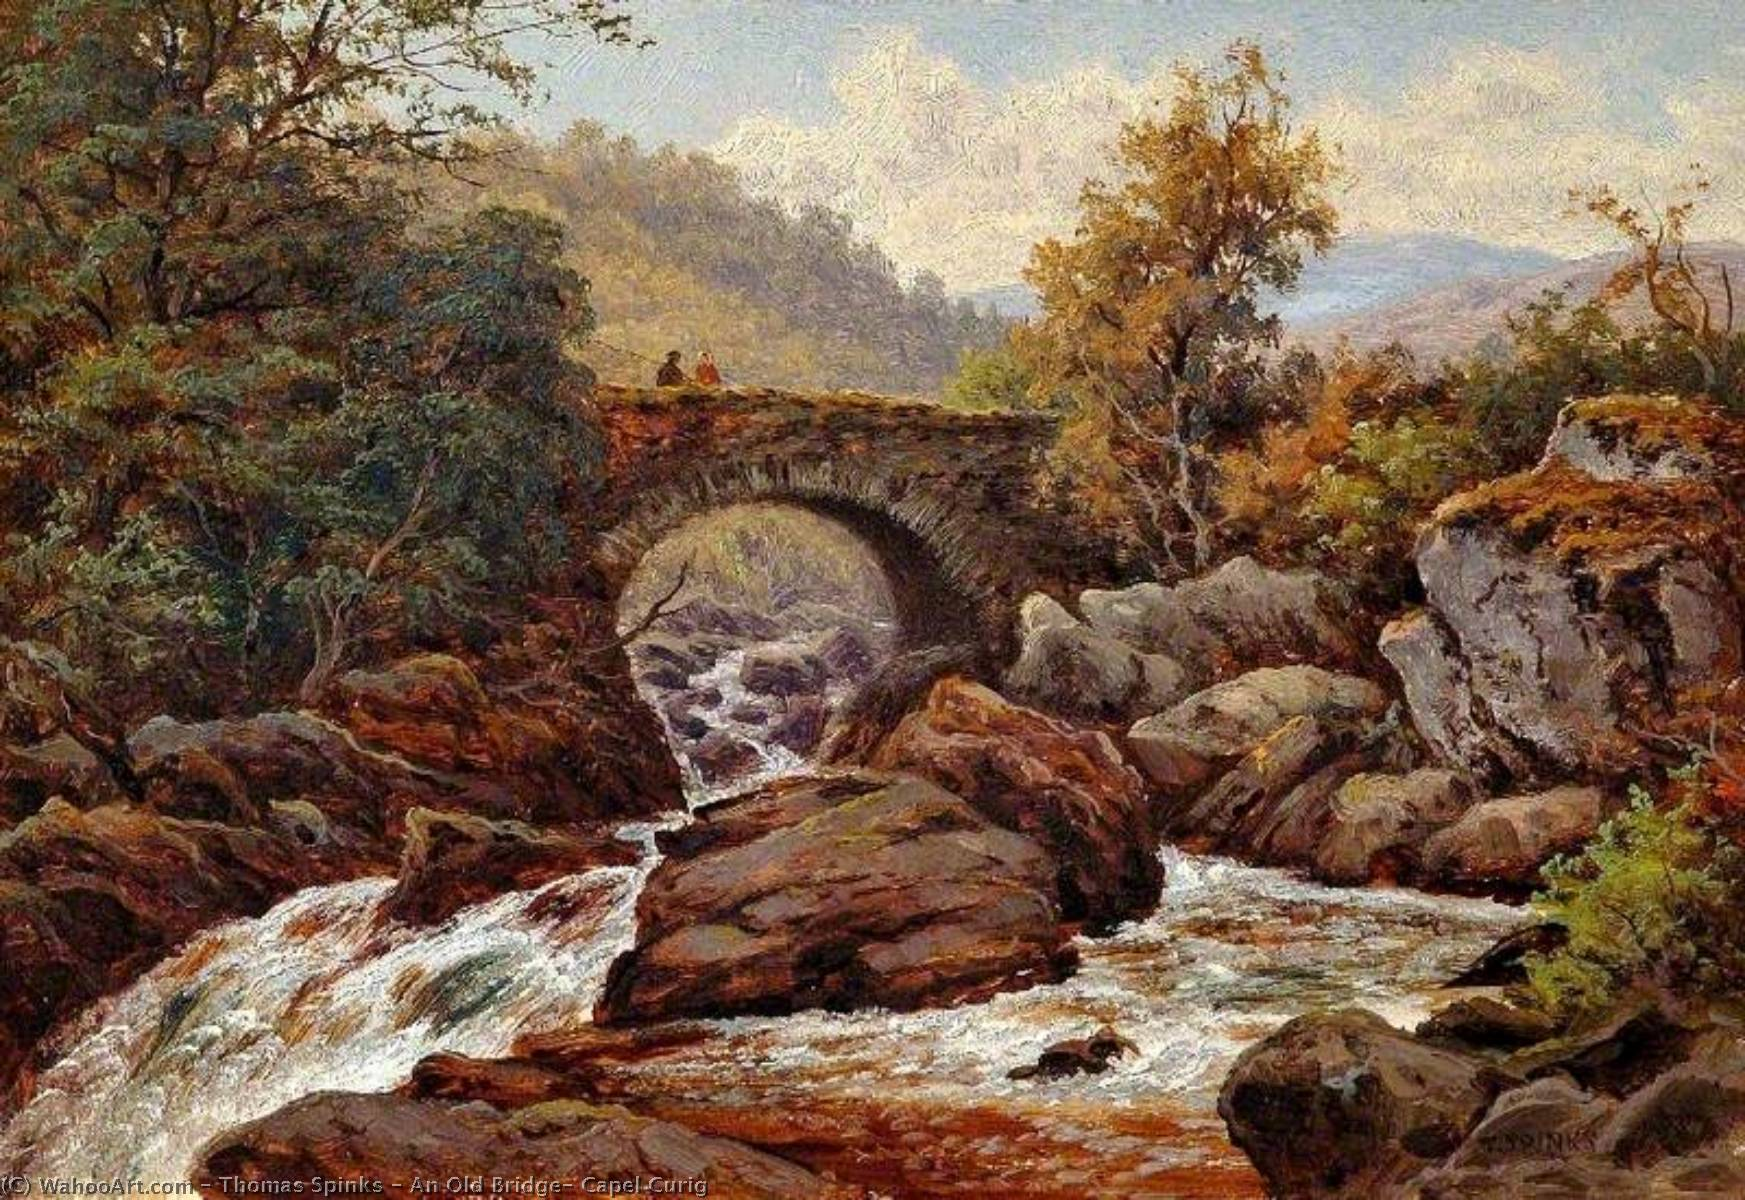 An Old Bridge, Capel Curig, 1887 by Thomas Spinks | WahooArt.com